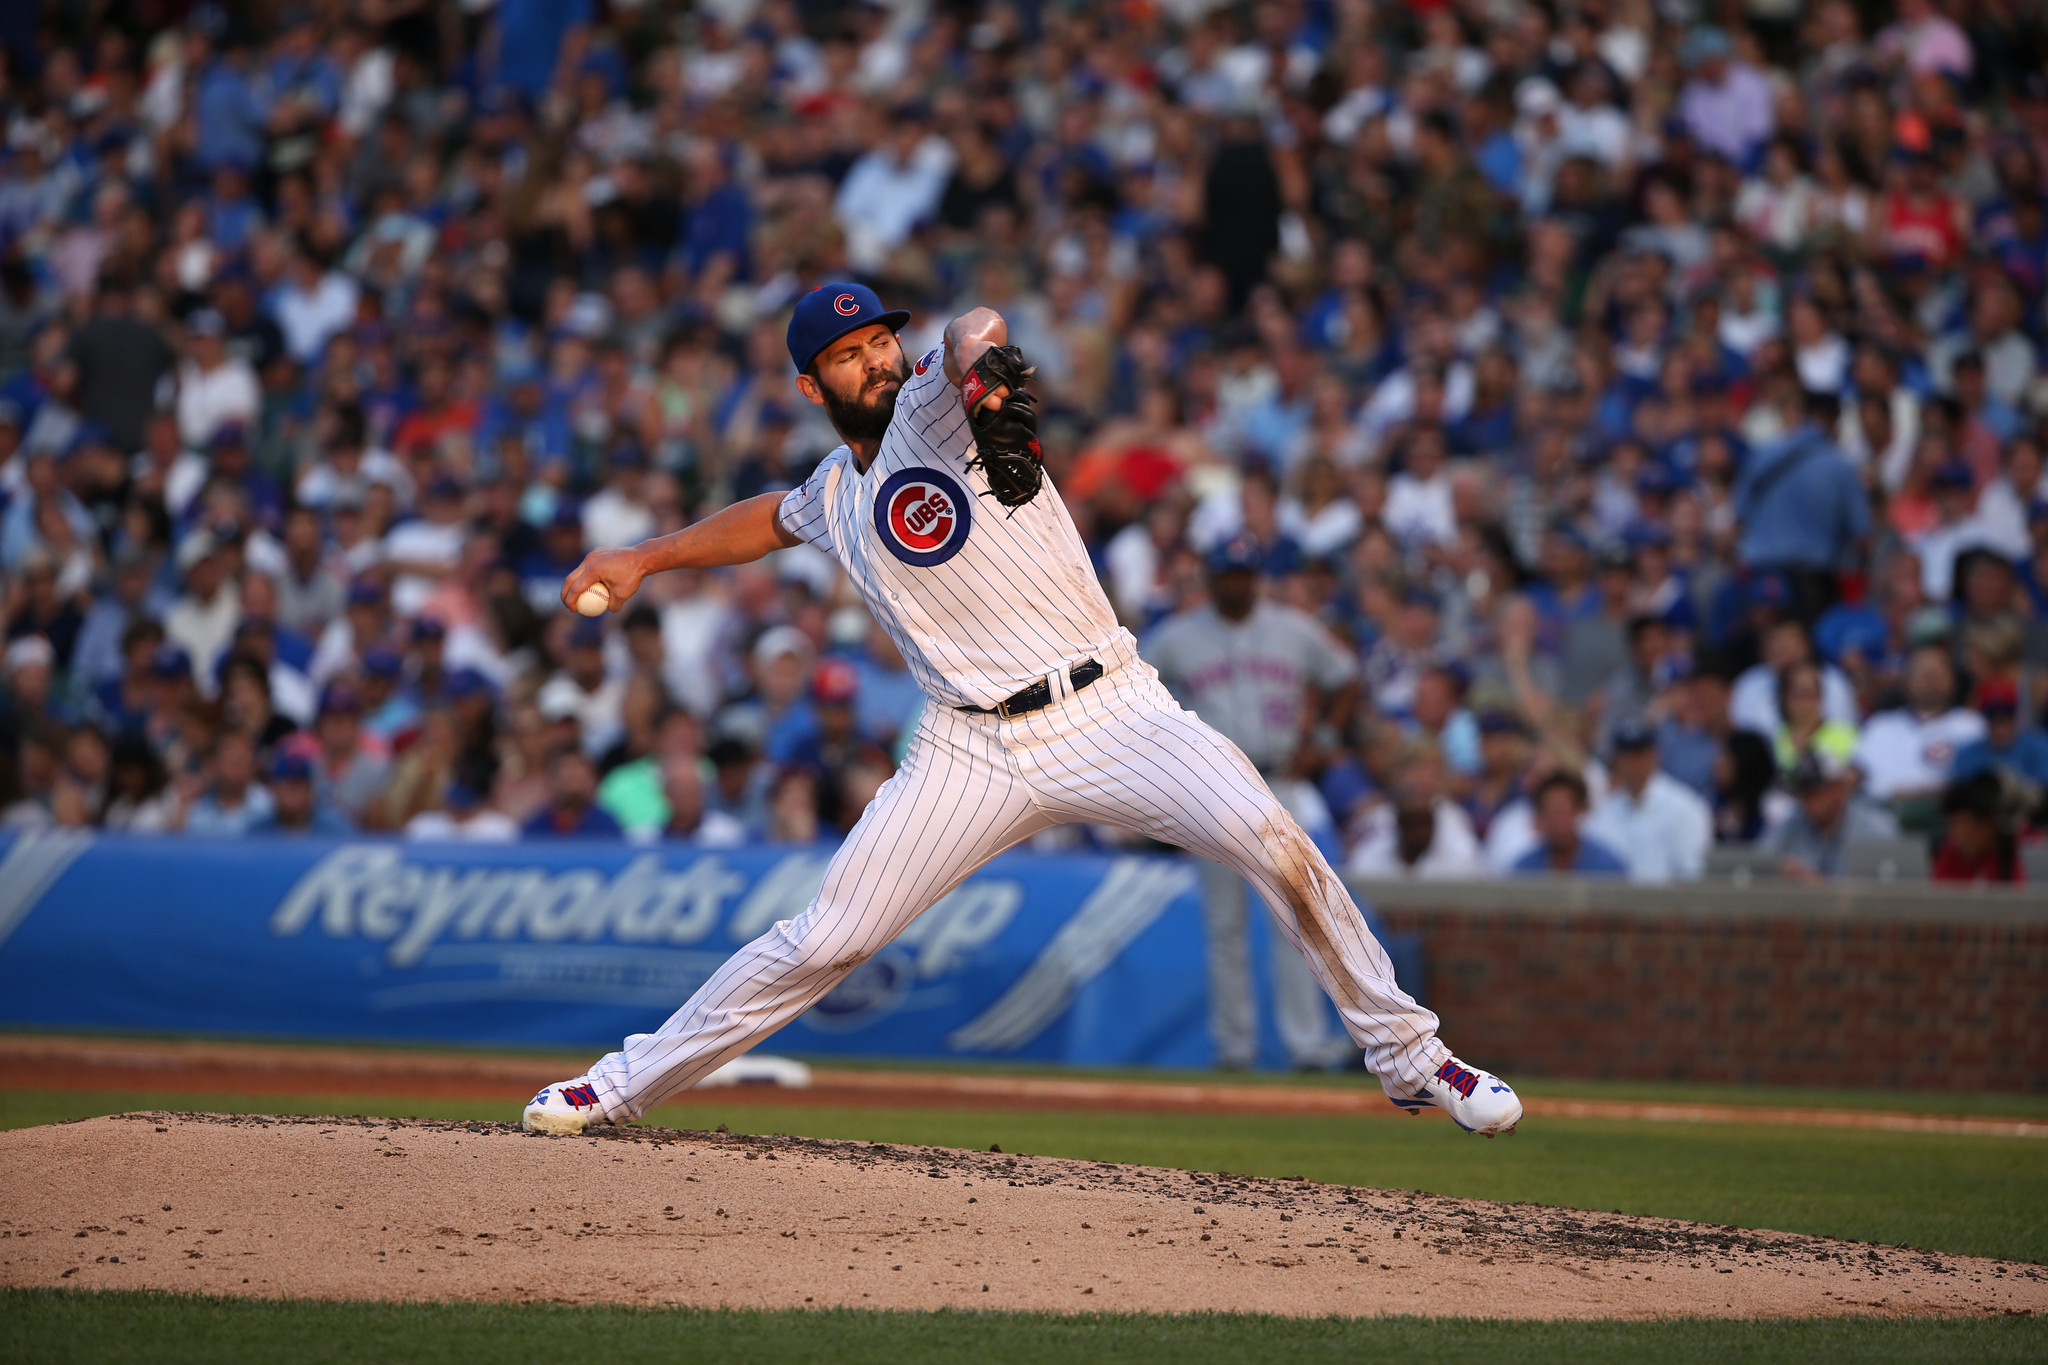 Ct-gameday-cubs-mariners-spt-0731-20160730